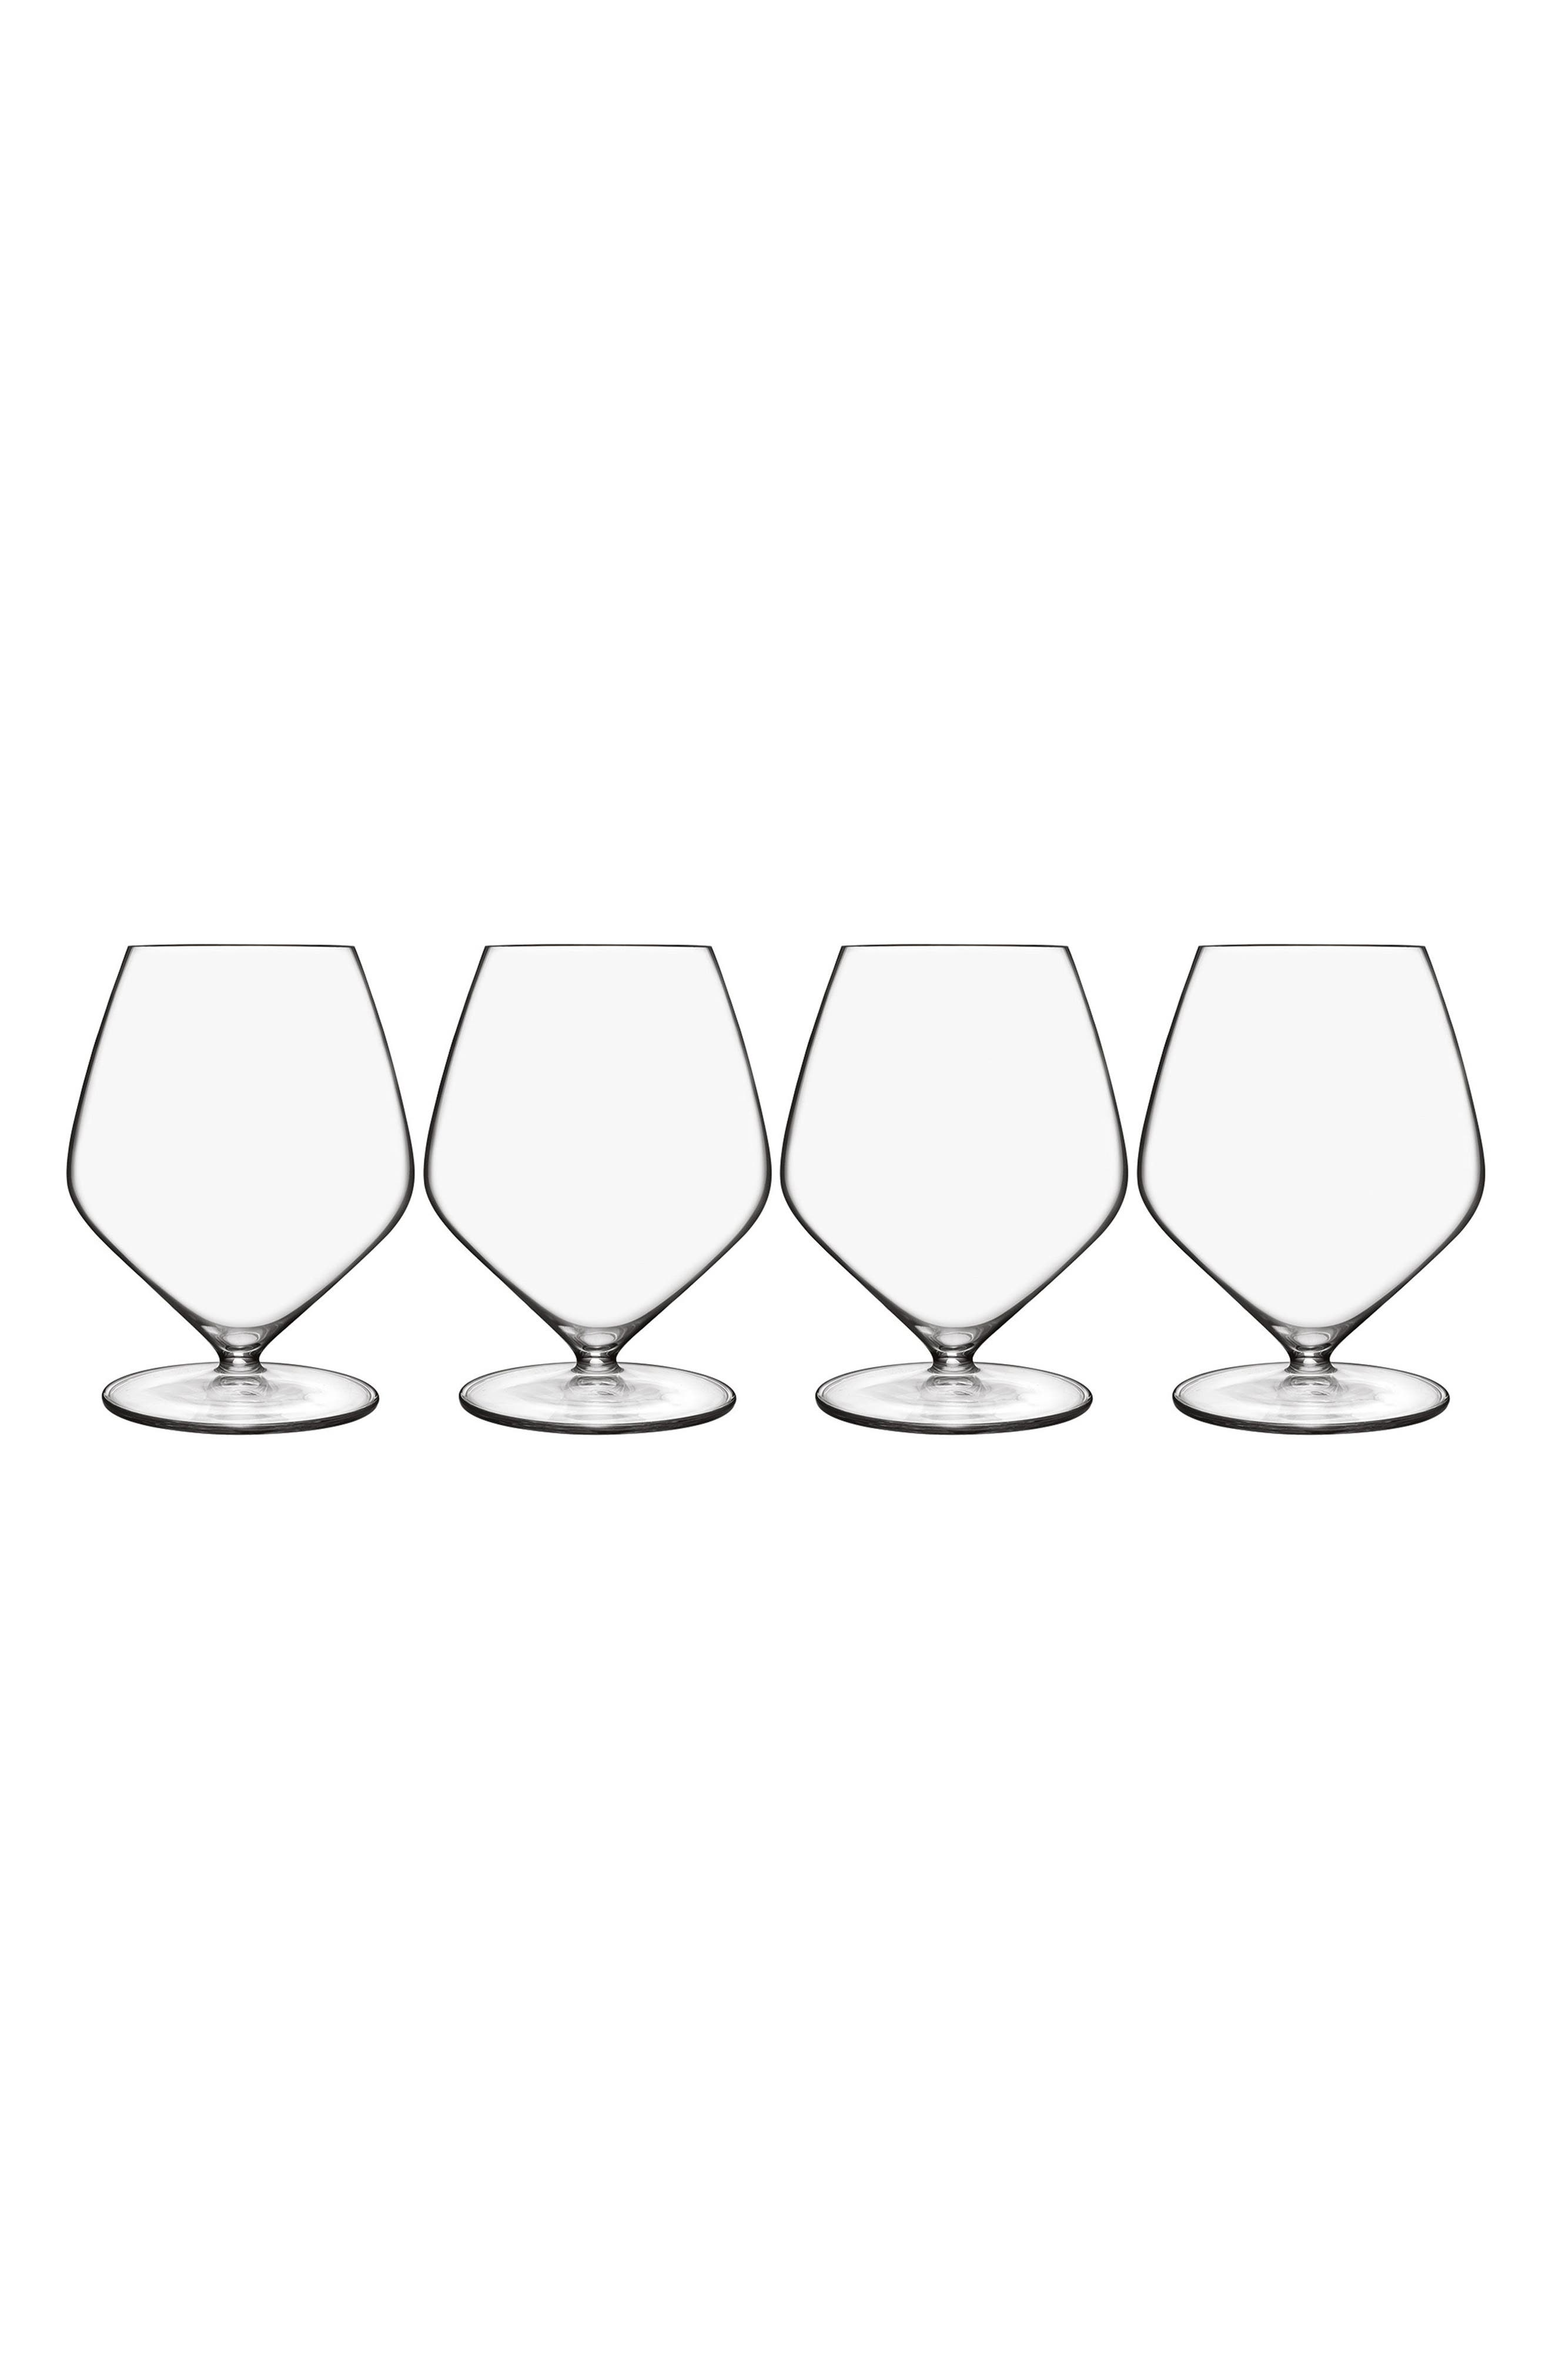 T-Glass Set of 4 Pinot Noir Glasses,                             Main thumbnail 1, color,                             Clear